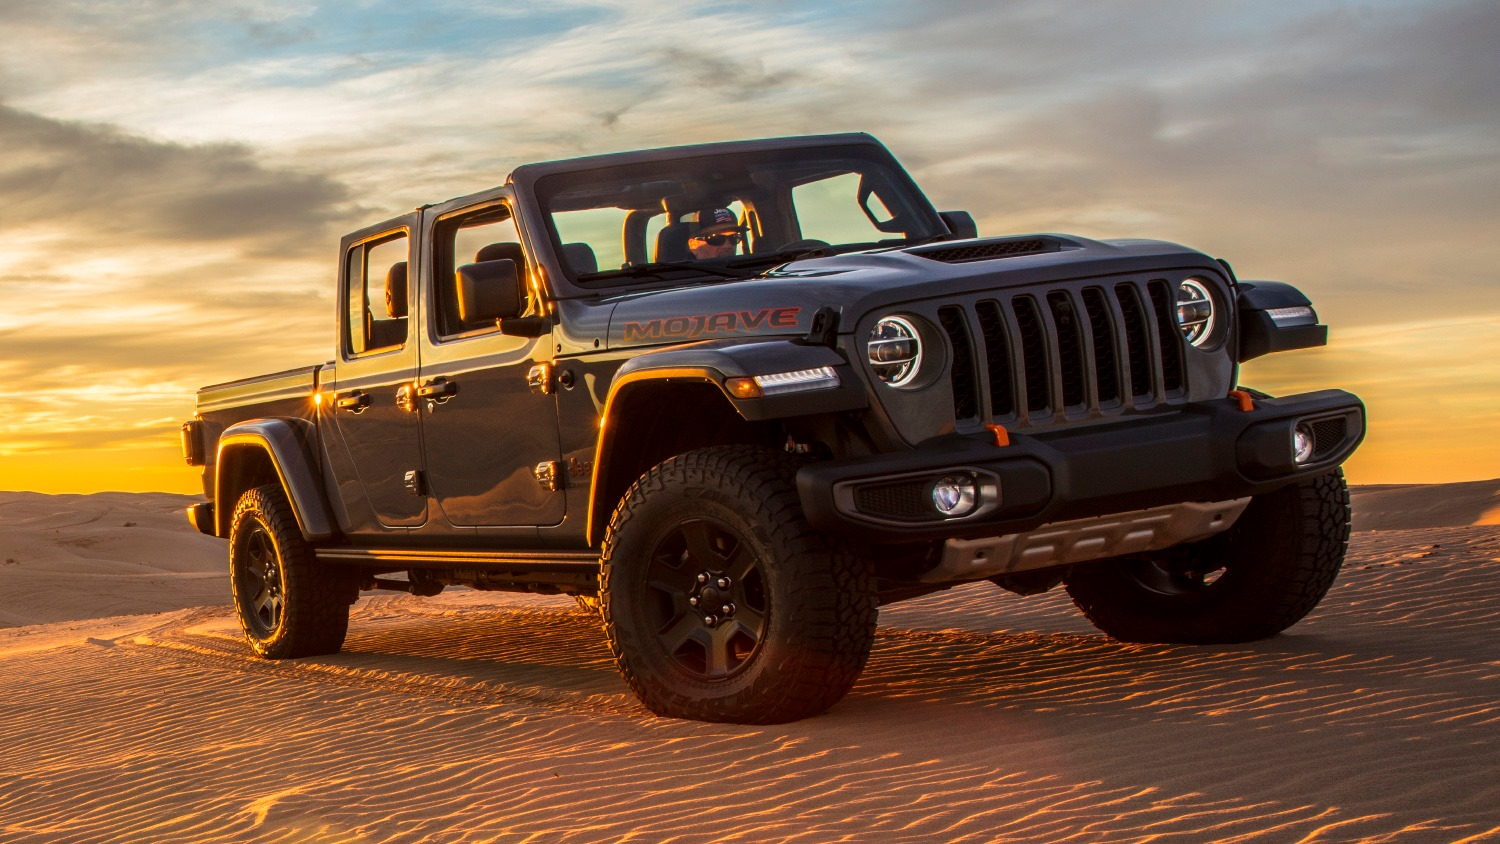 Jeep Gladiator Mojave Desert Rated 2020-